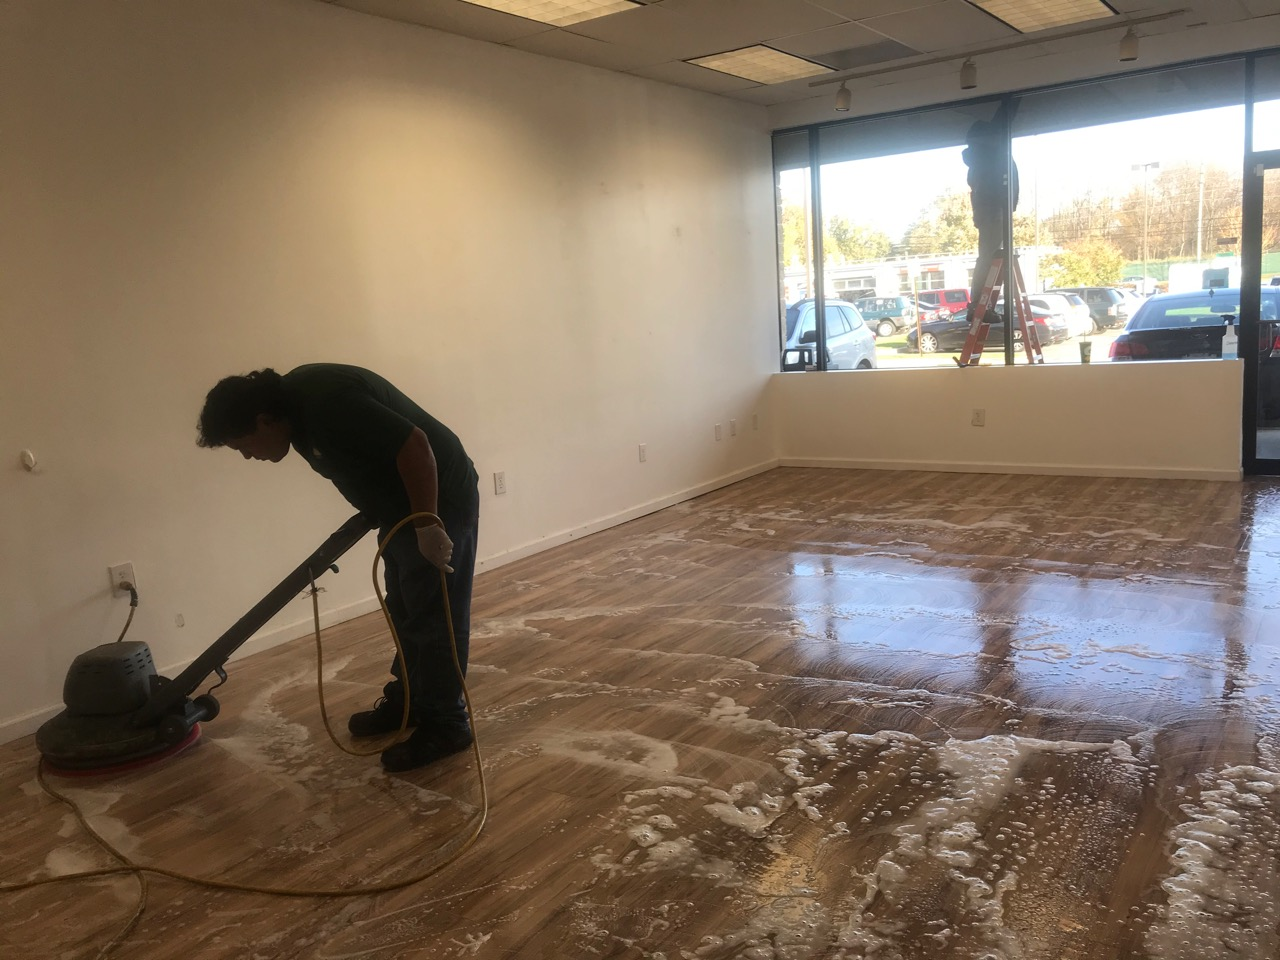 Ground Maintenance and Tenant Services for Retail Properties Company